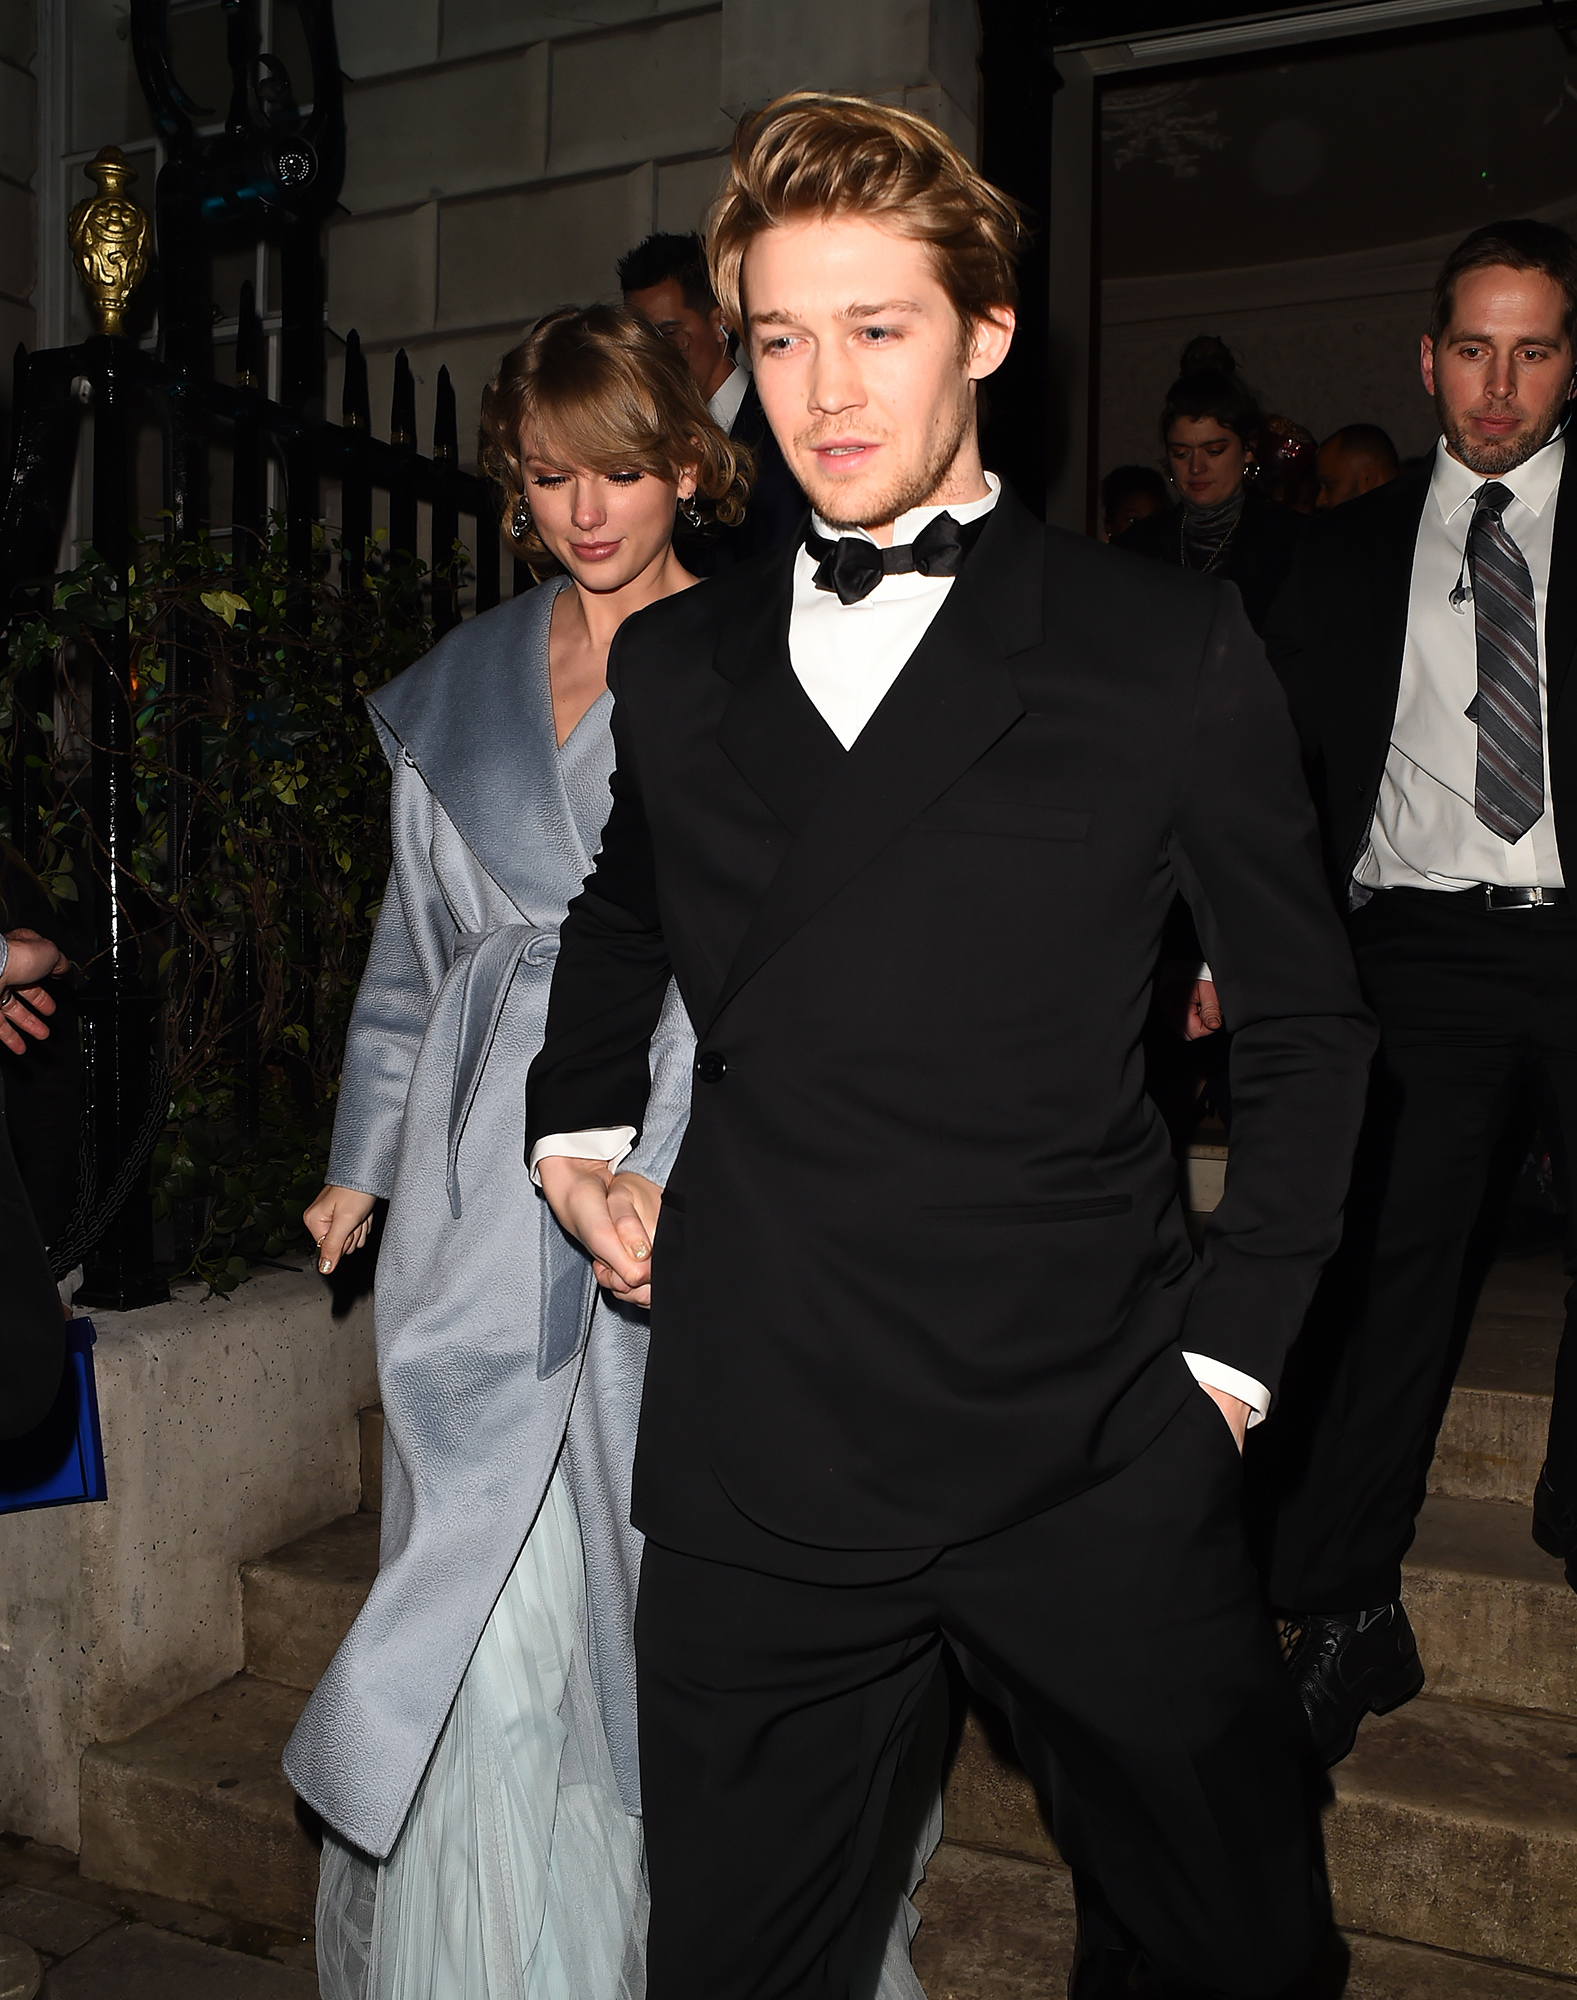 Taylor Swift and Joe Alwyn in London